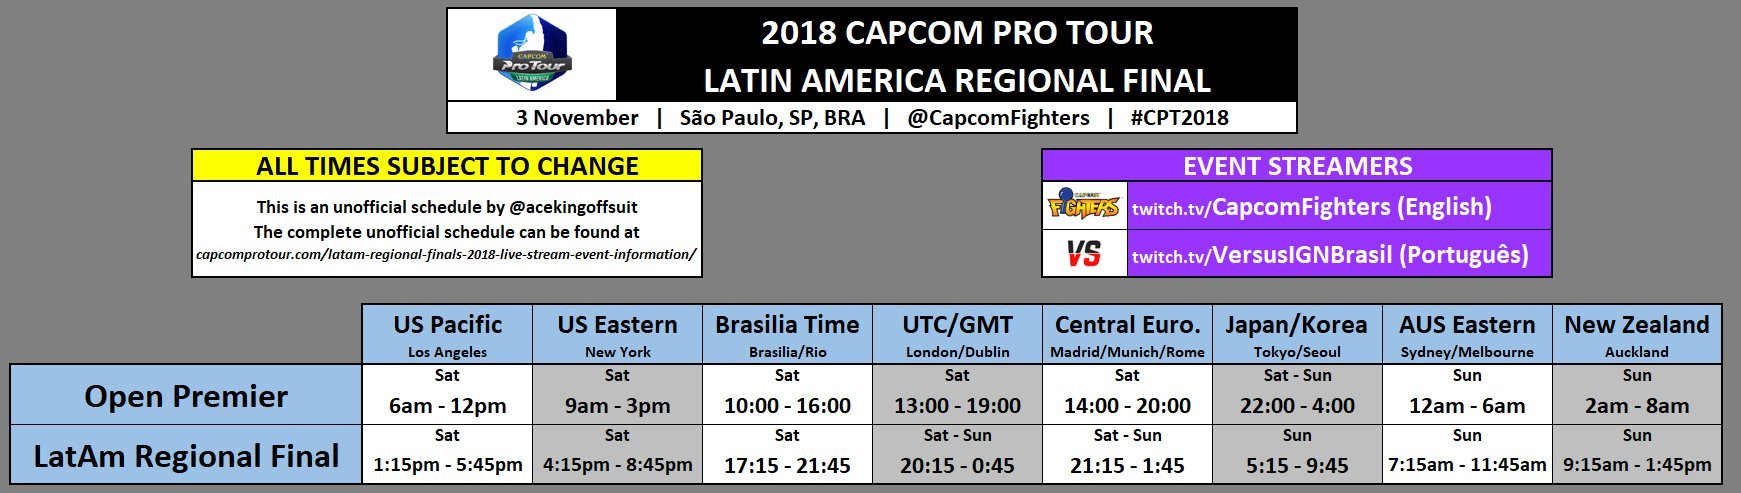 Capcom Pro Tour Latin America Event Schedule 1 out of 1 image gallery